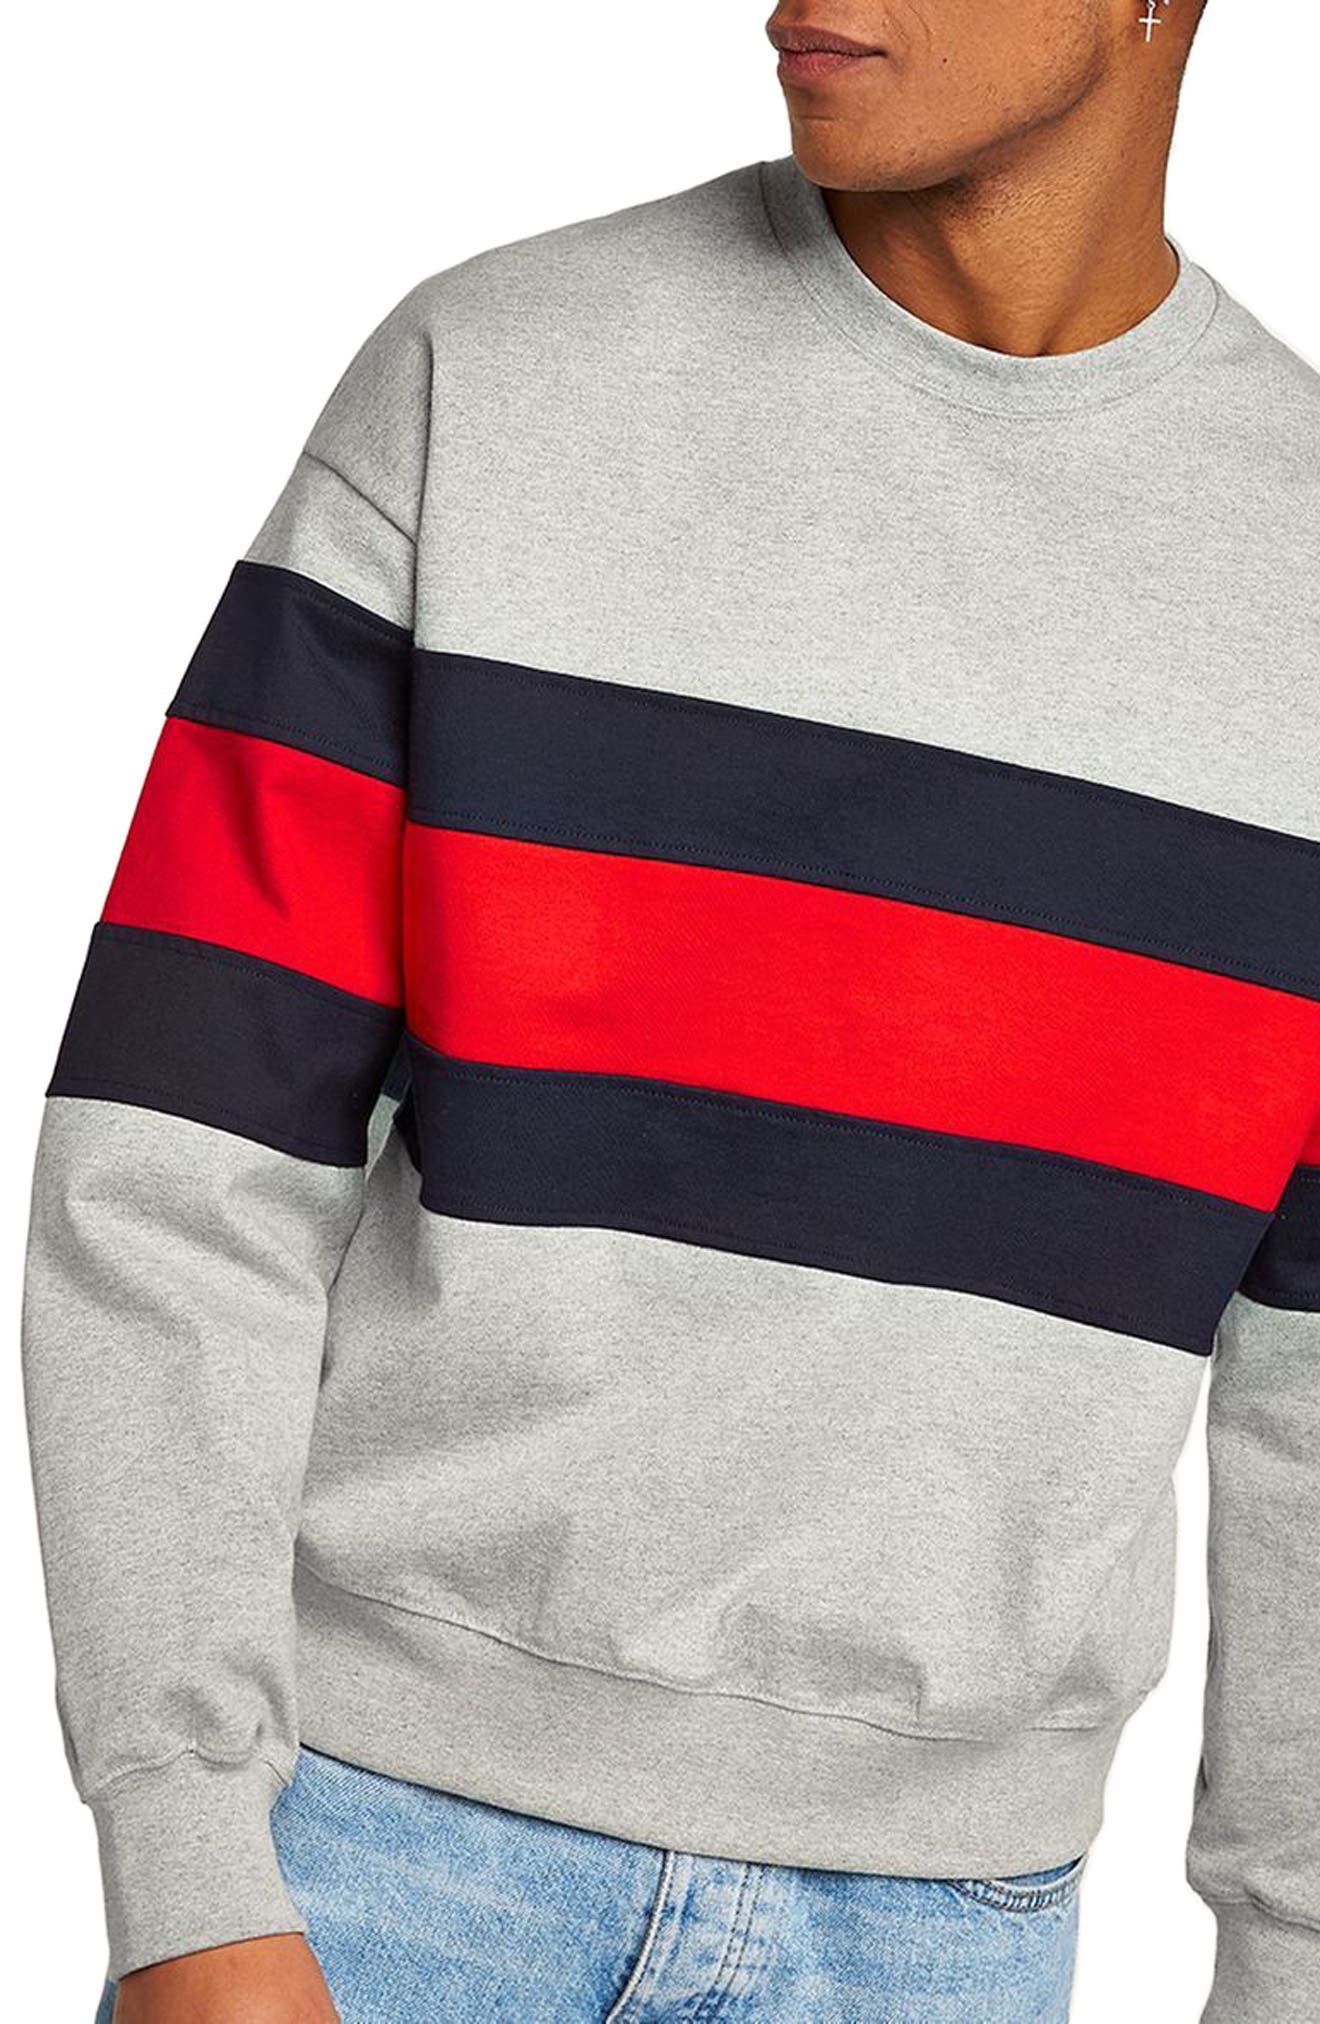 Classic Fit Striped Sweatshirt,                         Main,                         color, LIGHT GREY MULTI